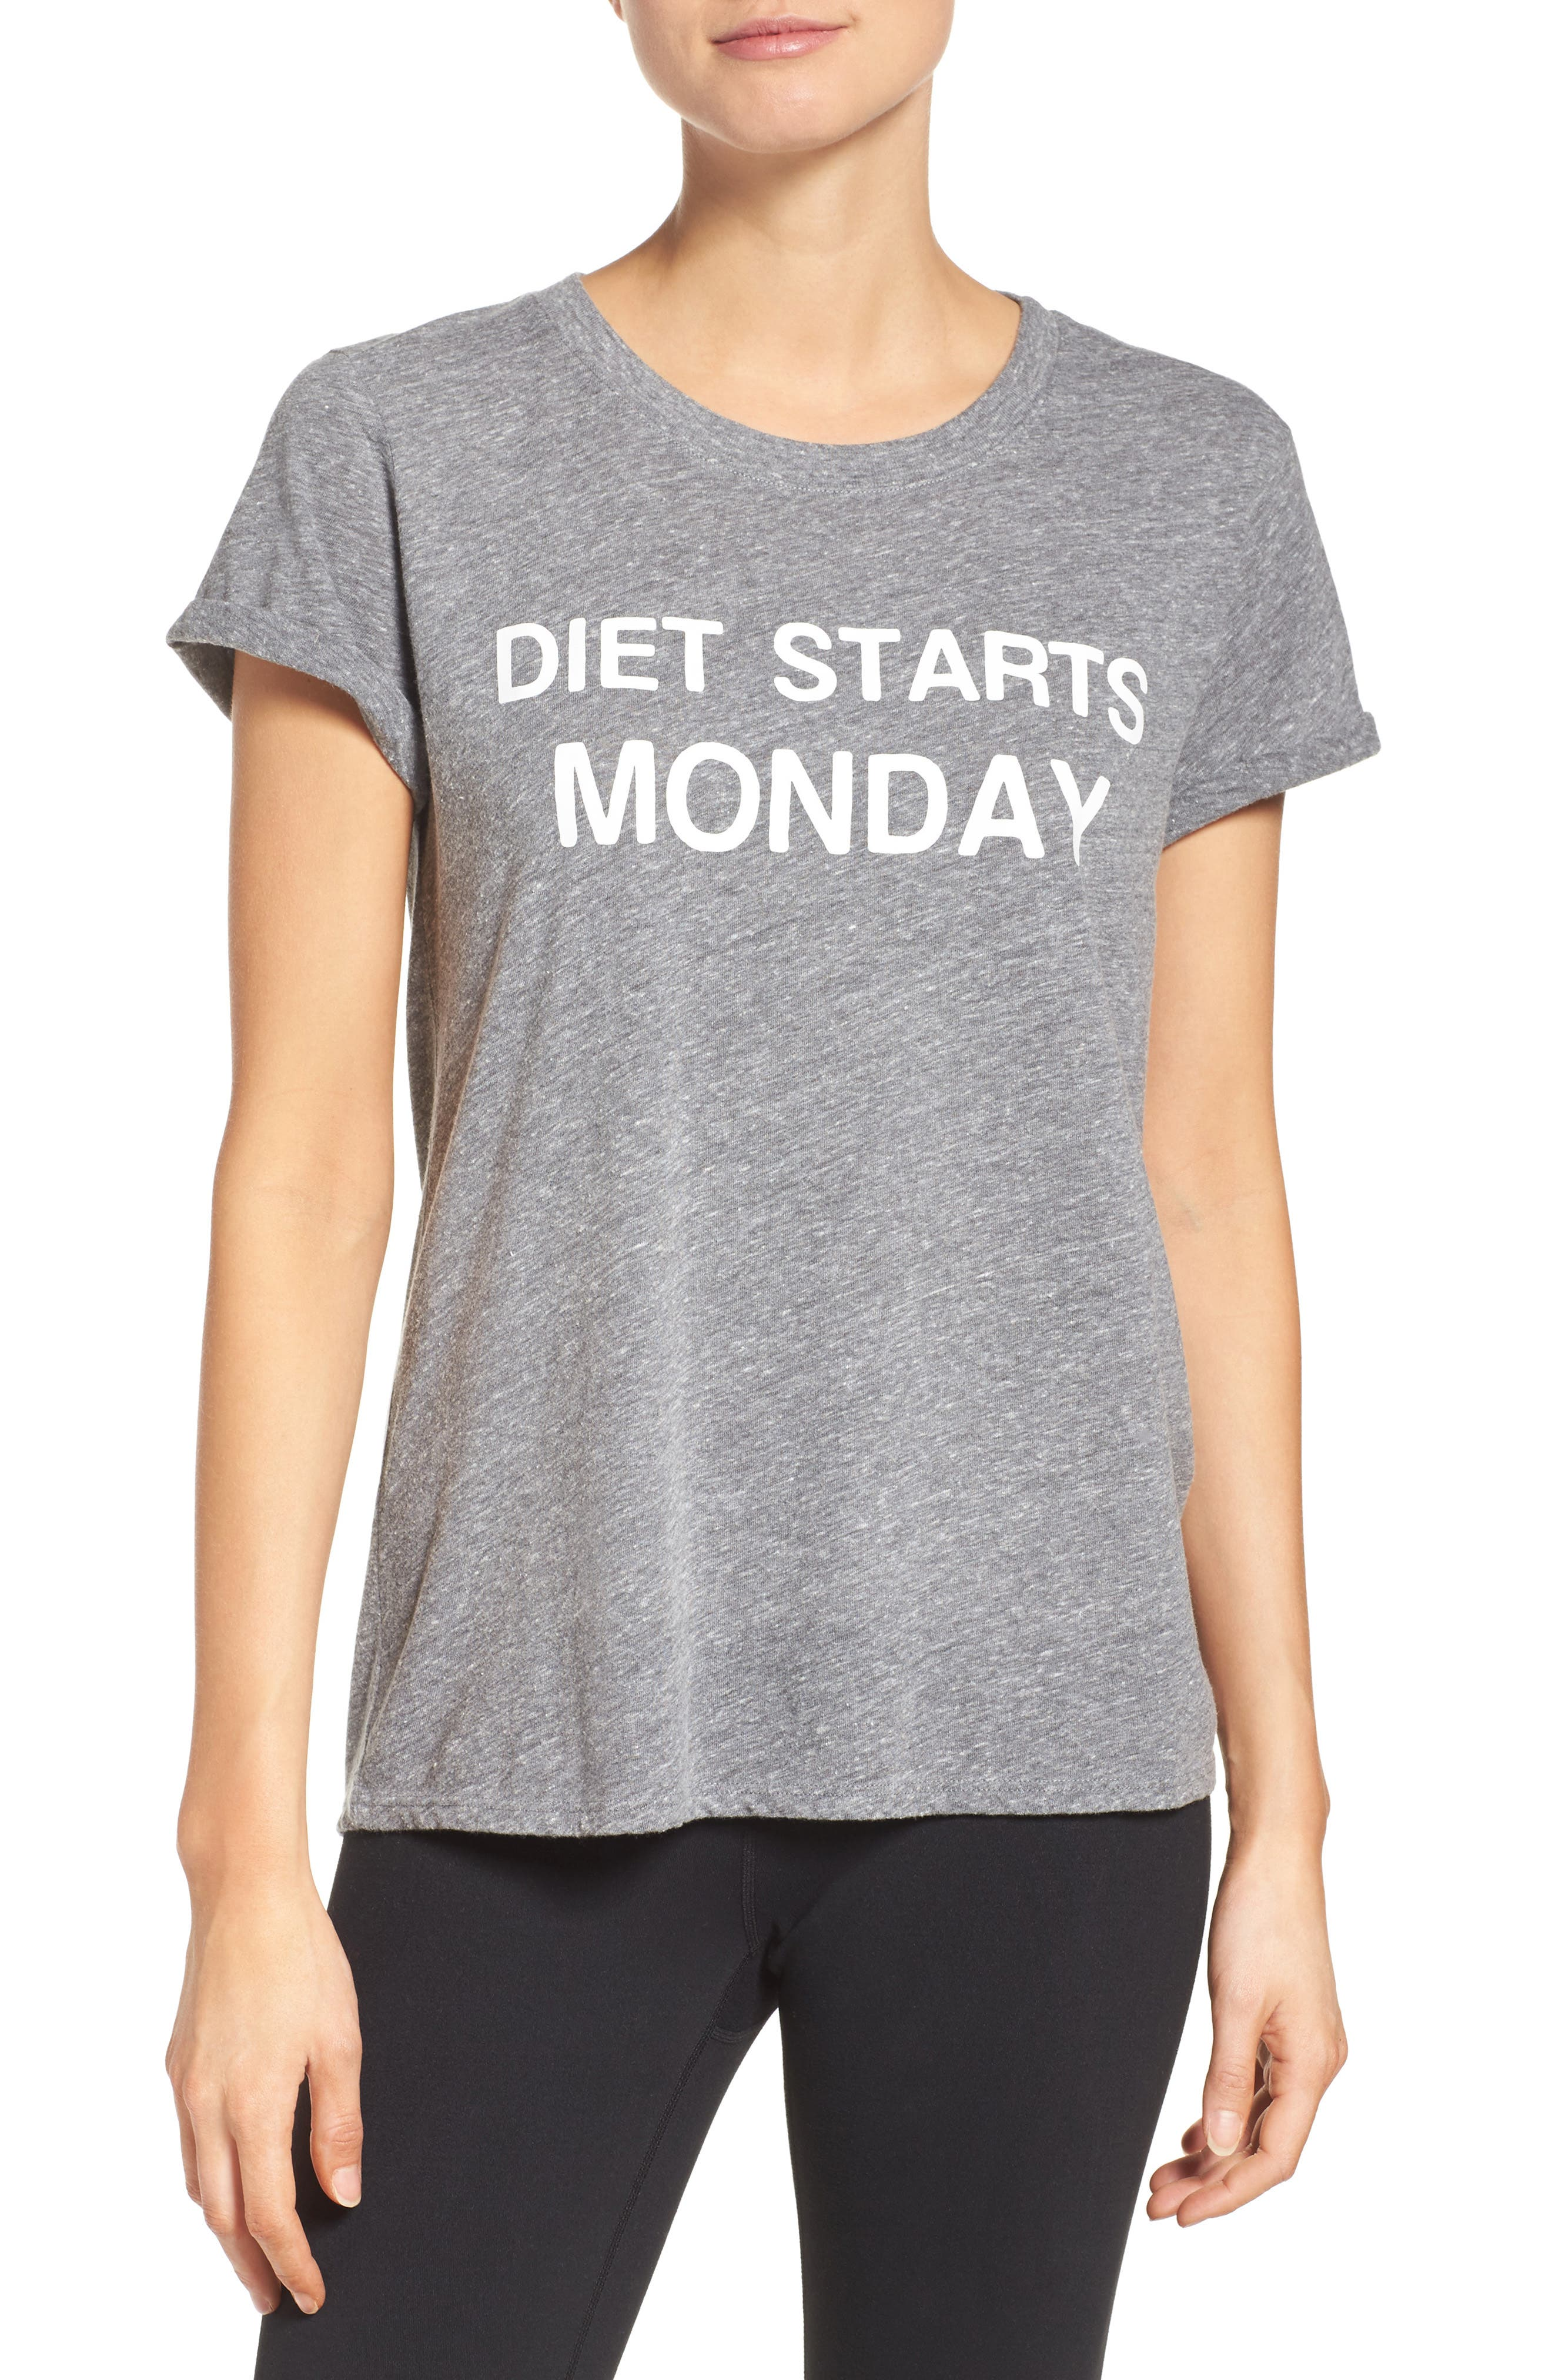 Main Image - Private Party Diet Starts Monday Tee